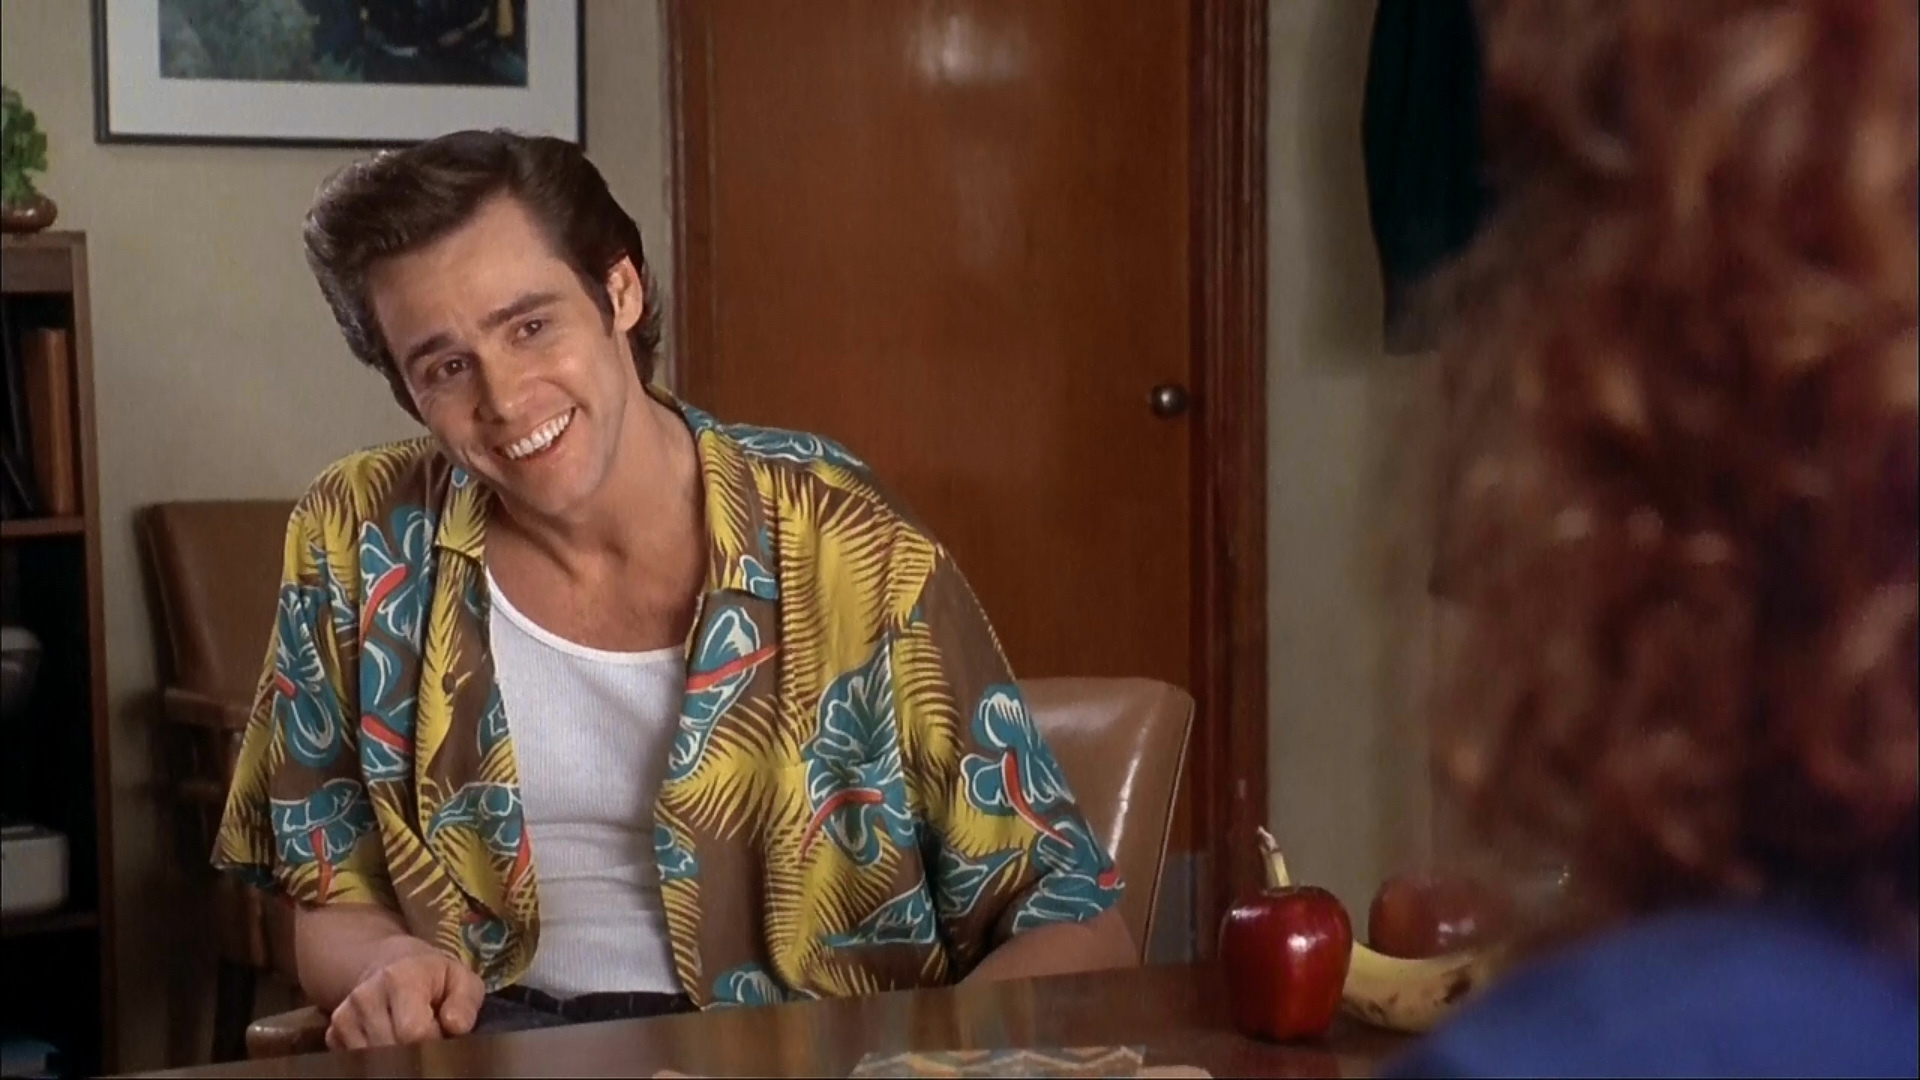 Ace ventura pet detective hd wallpaper background image 1920x1080 id609389 wallpaper abyss